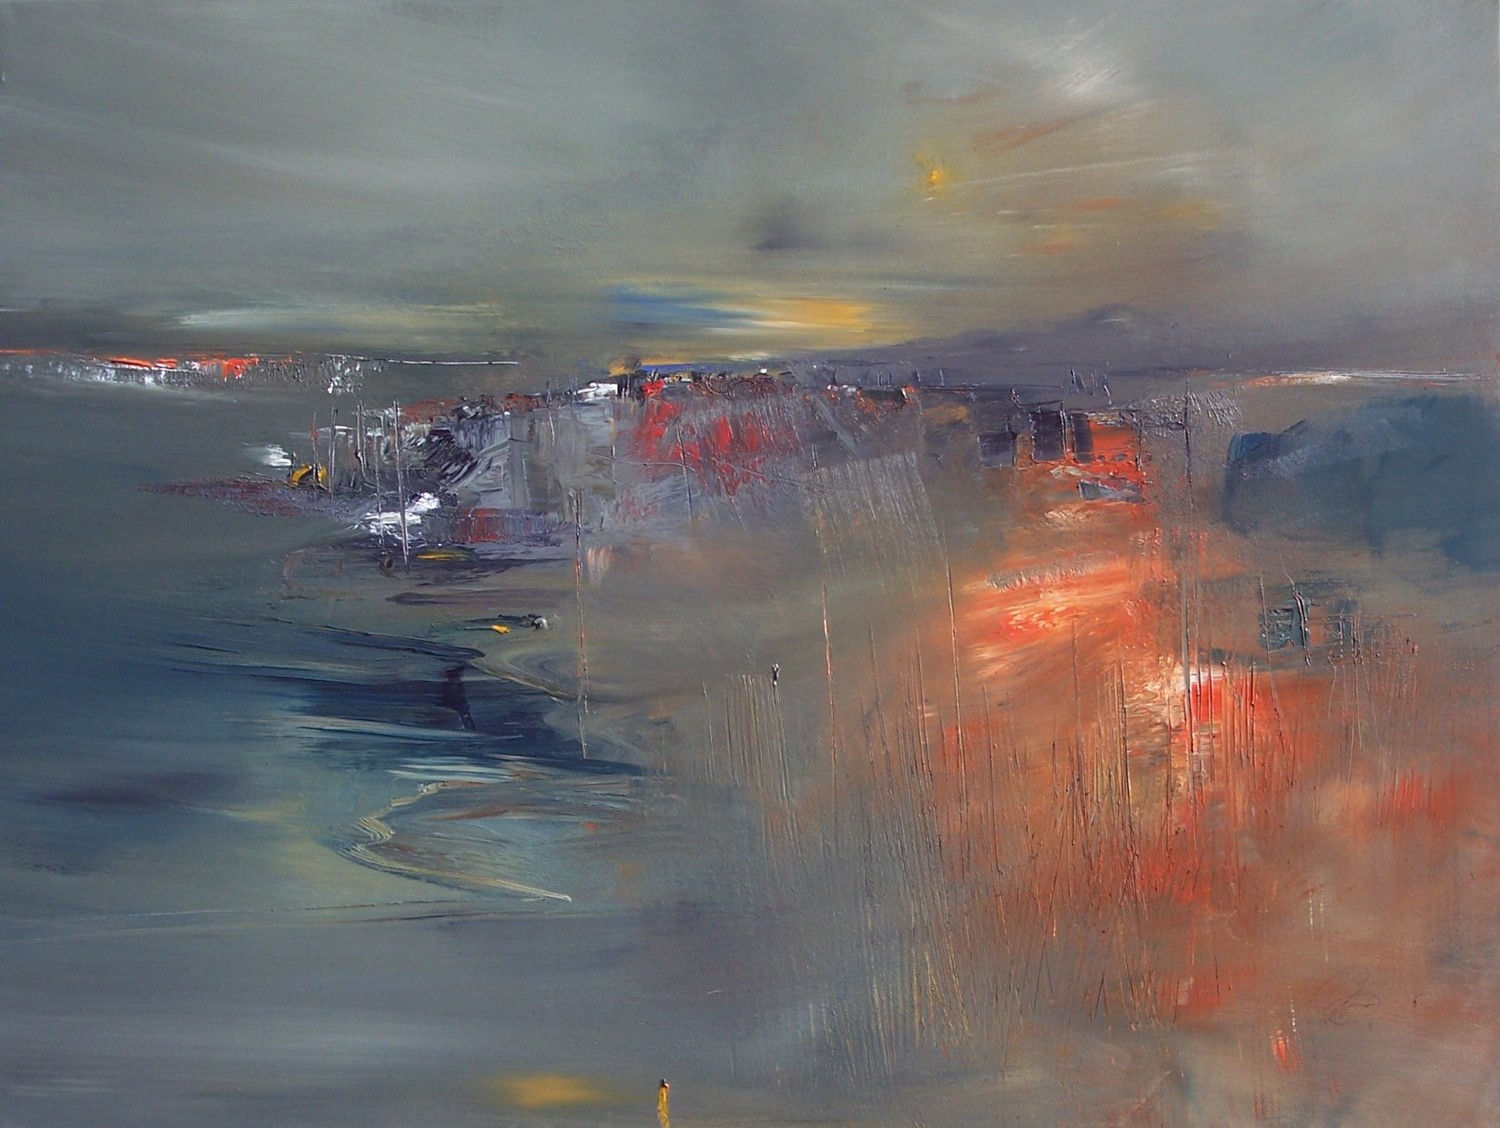 'Northern Port' by artist Rosanne Barr